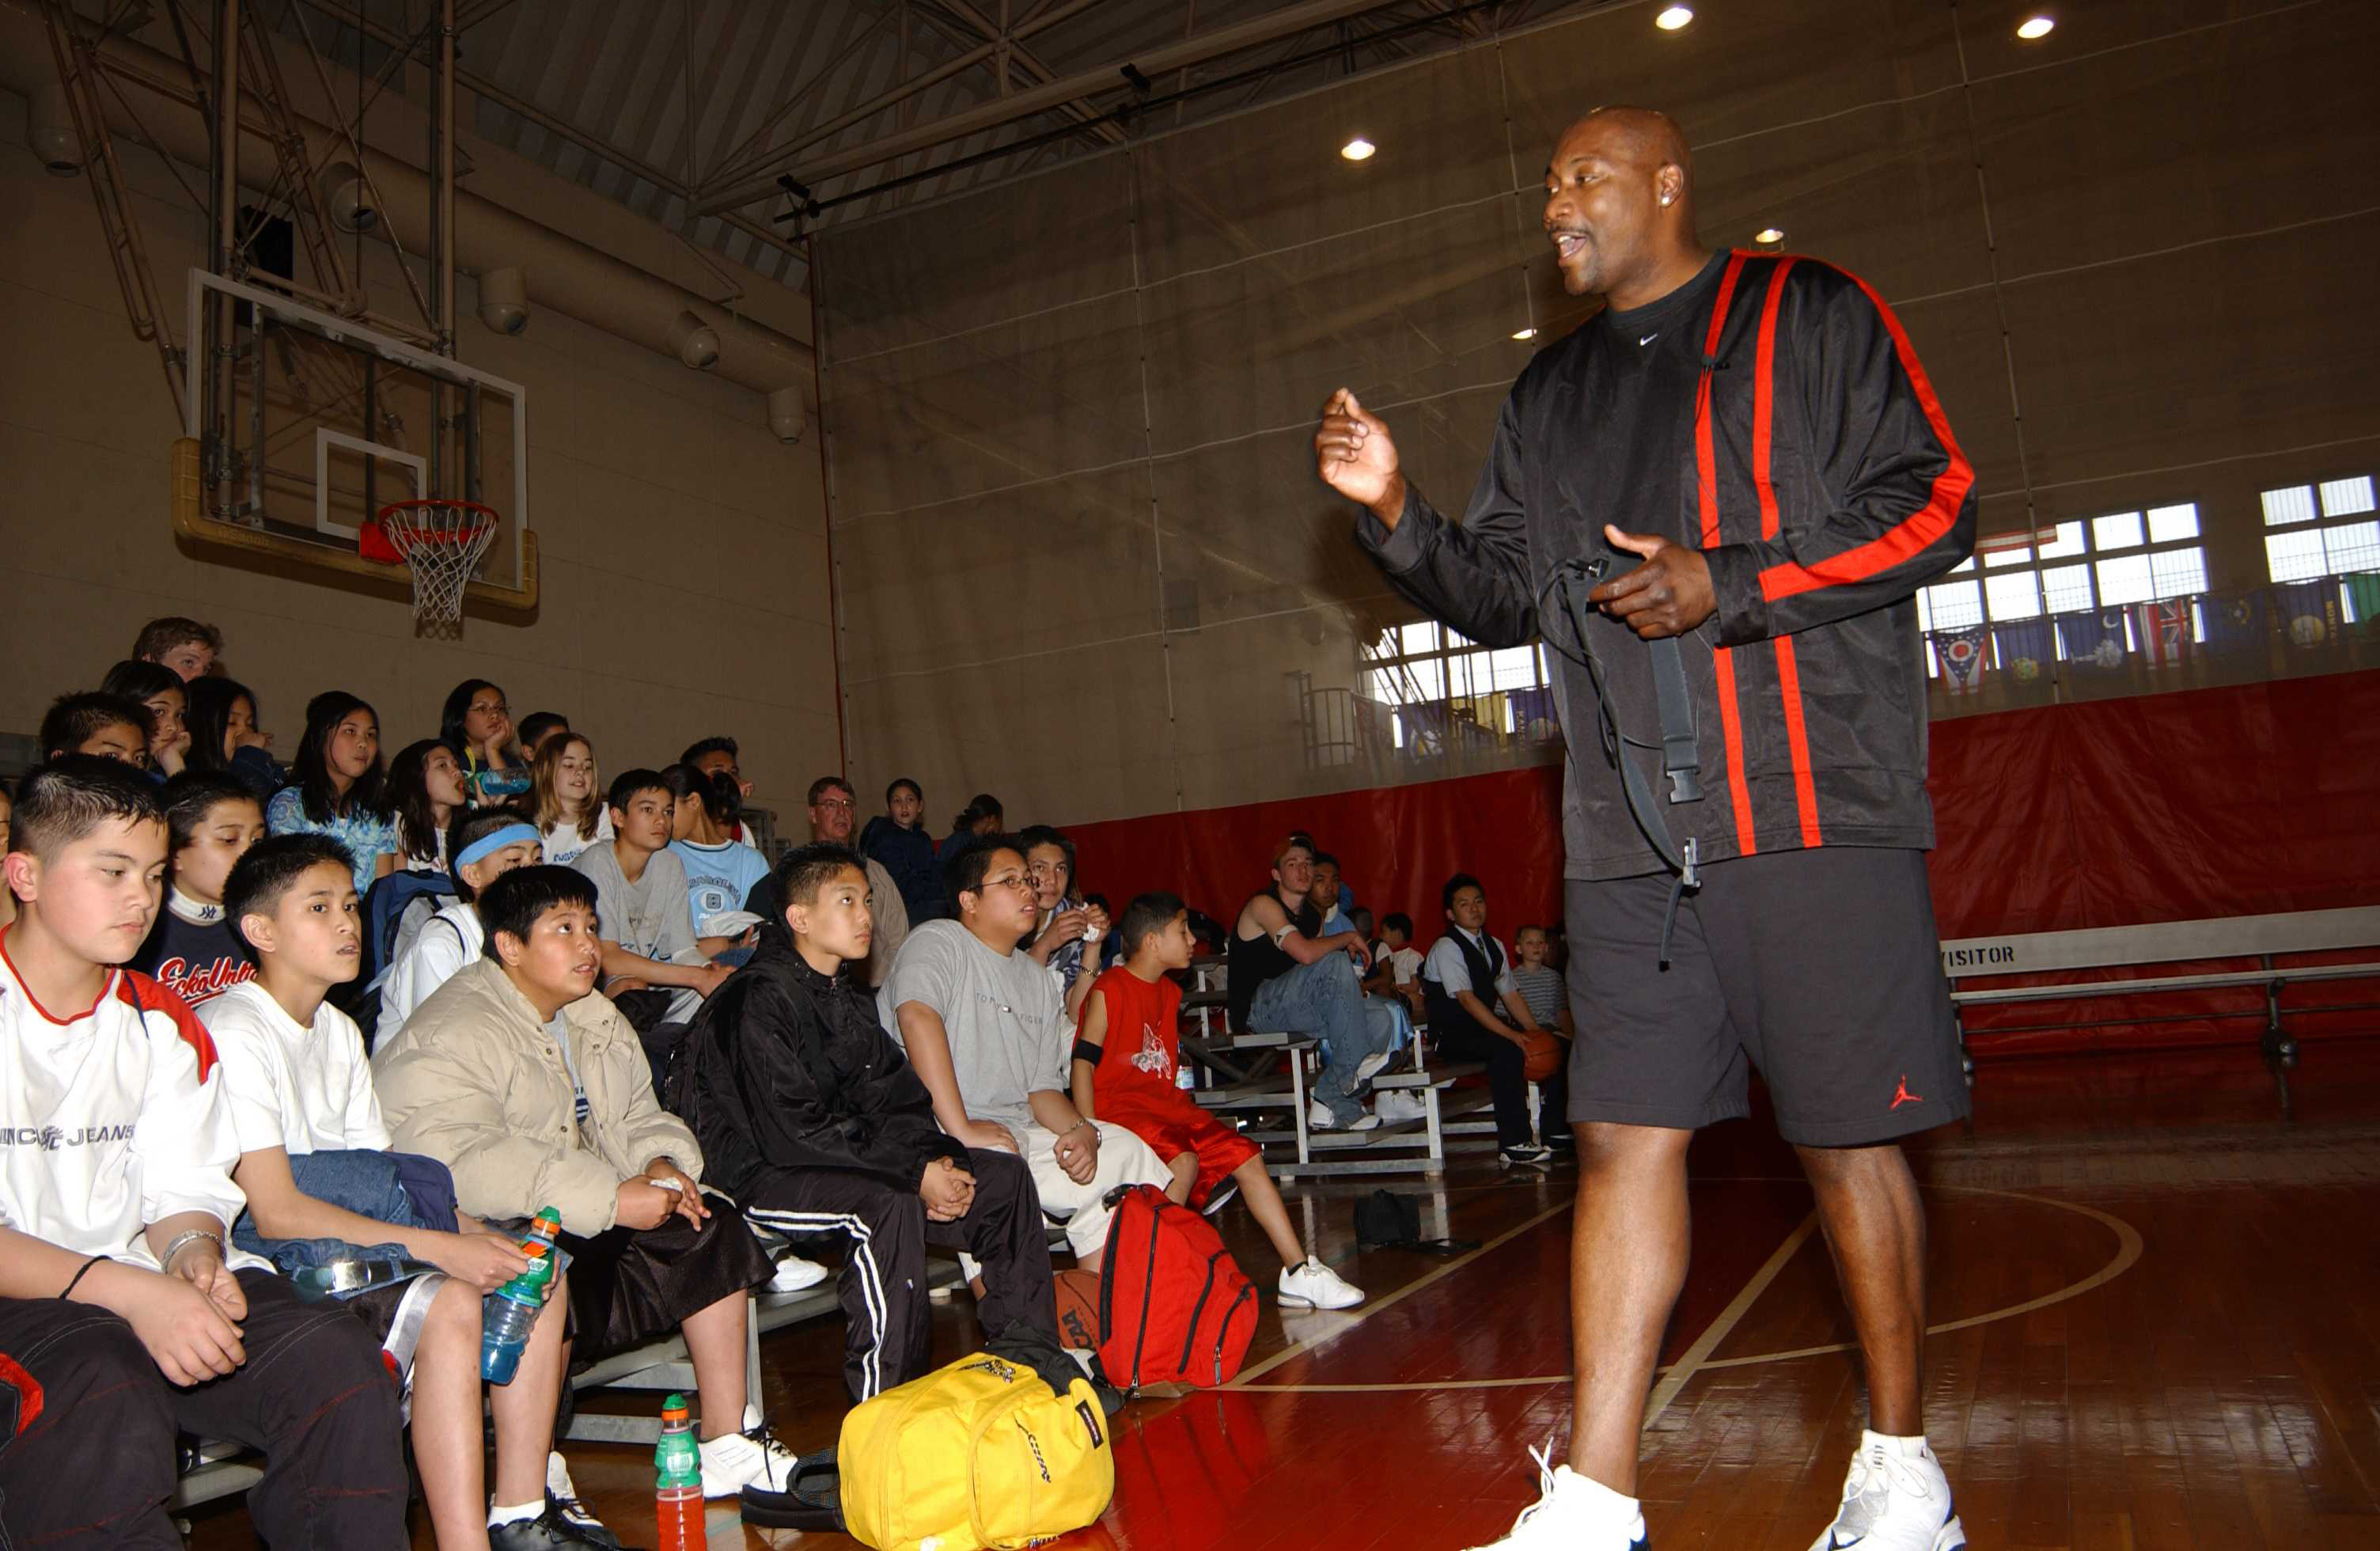 Former NBA player Jerome Kersey addresses a group of kids on the basketball court in the Naval Air Facility, Ranger Gym